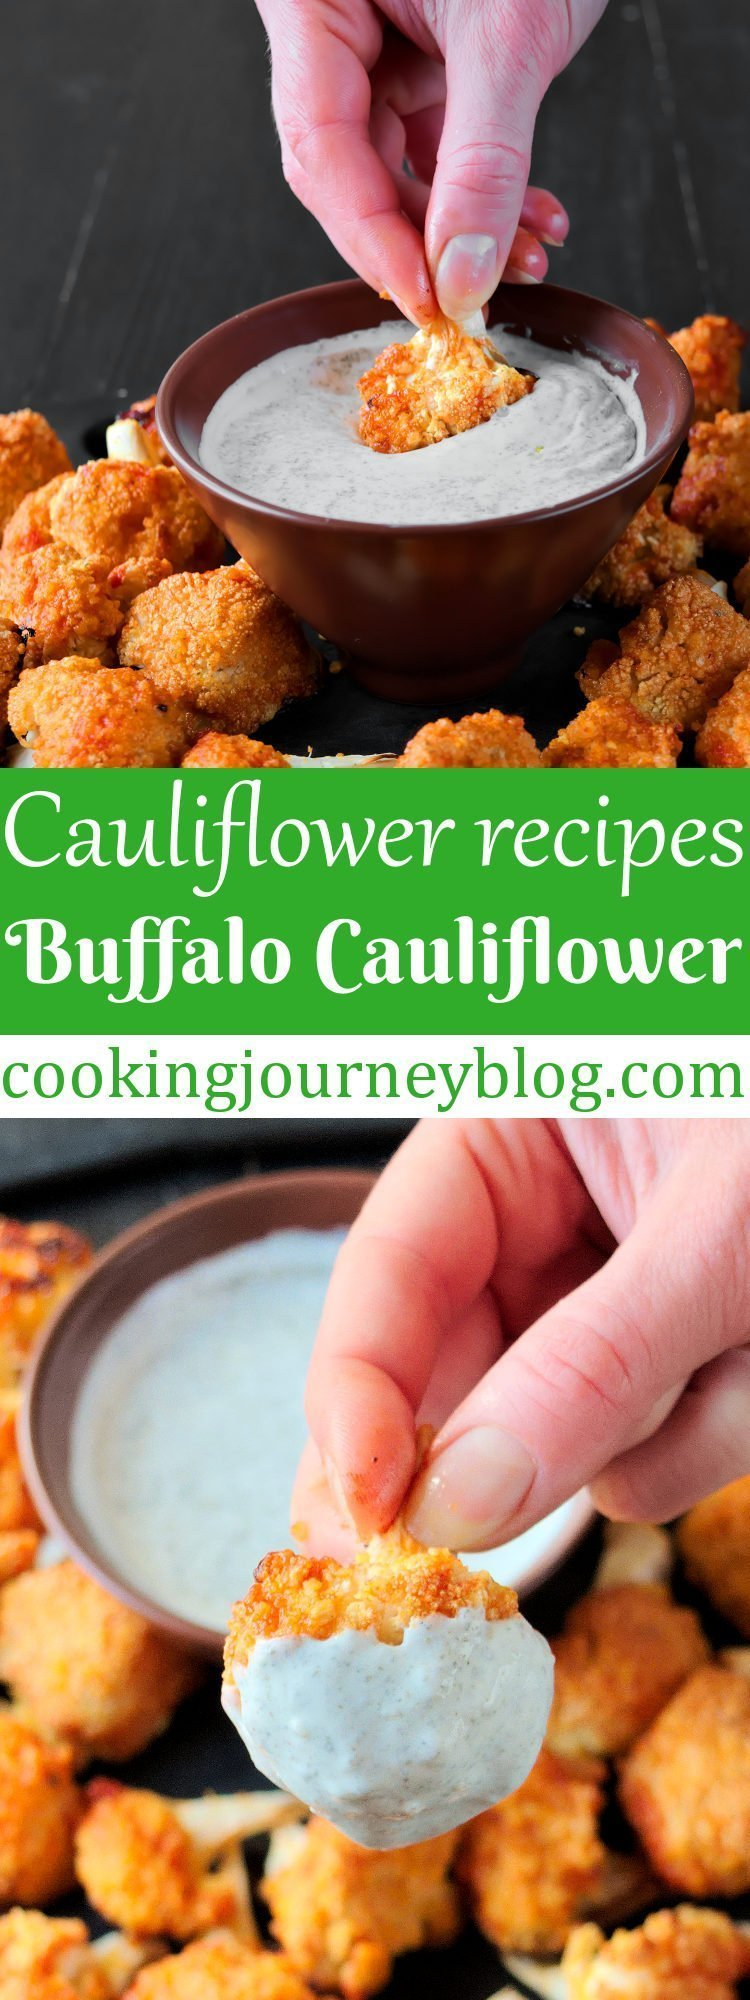 Buffalo cauliflower is one of easy vegetarian recipes to try! These cauliflower bites are hot and addictive. Easy healthy snacks to serve for your family and friends!